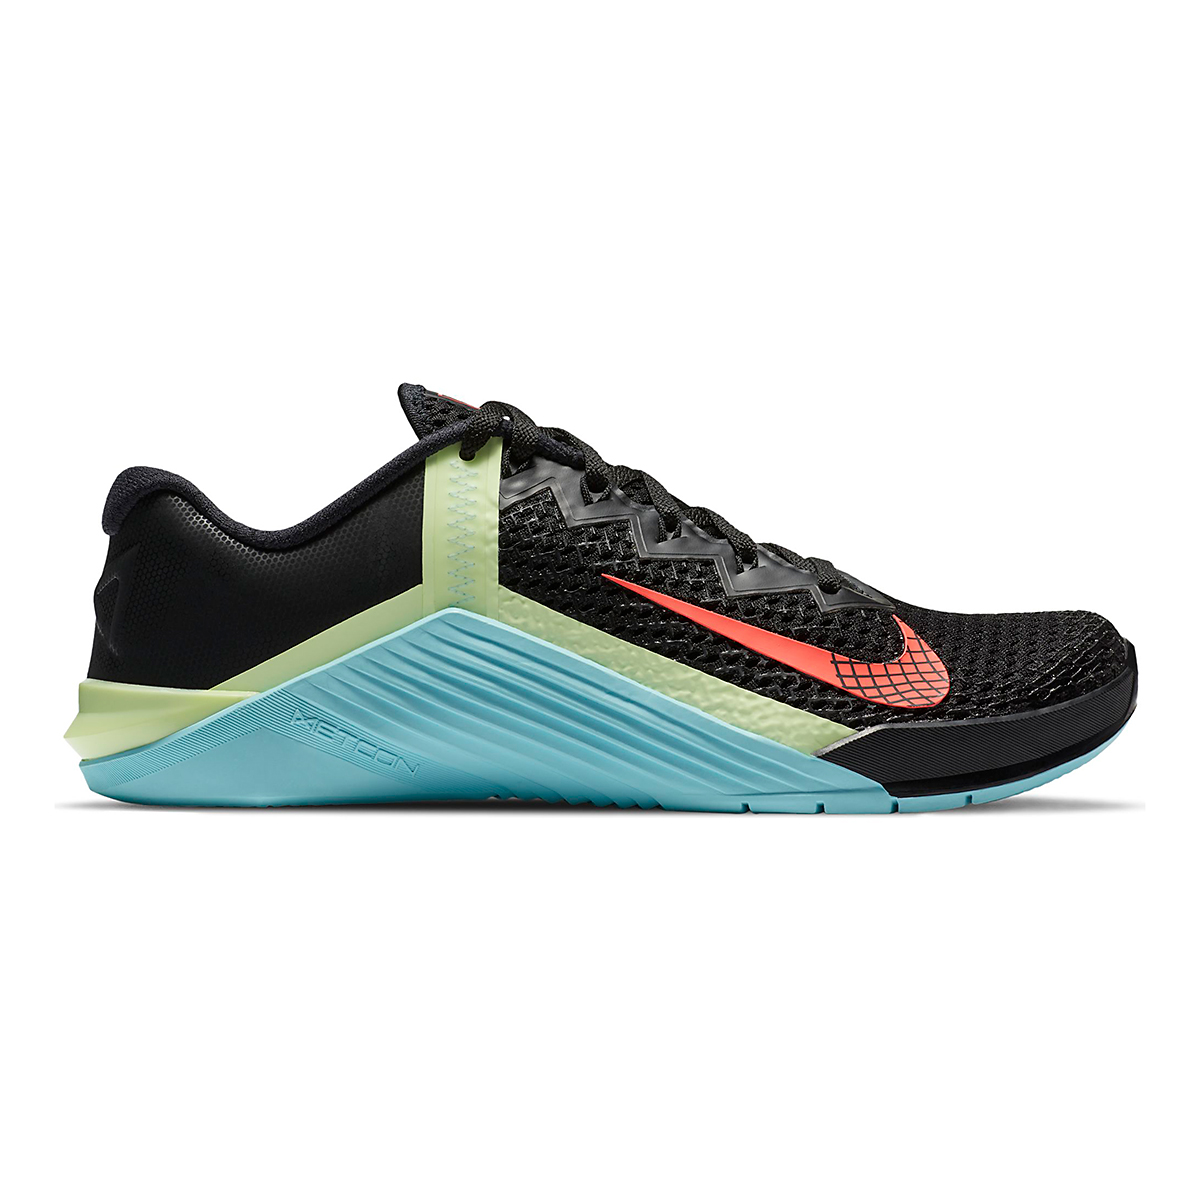 Women's Nike Nike Metcon 6 Training Shoes - Color: Black/White/Glacier Ice/Flash Crimson - Size: 5 - Width: Regular, Black/White/Glacier Ice/Flash Crimson, large, image 1